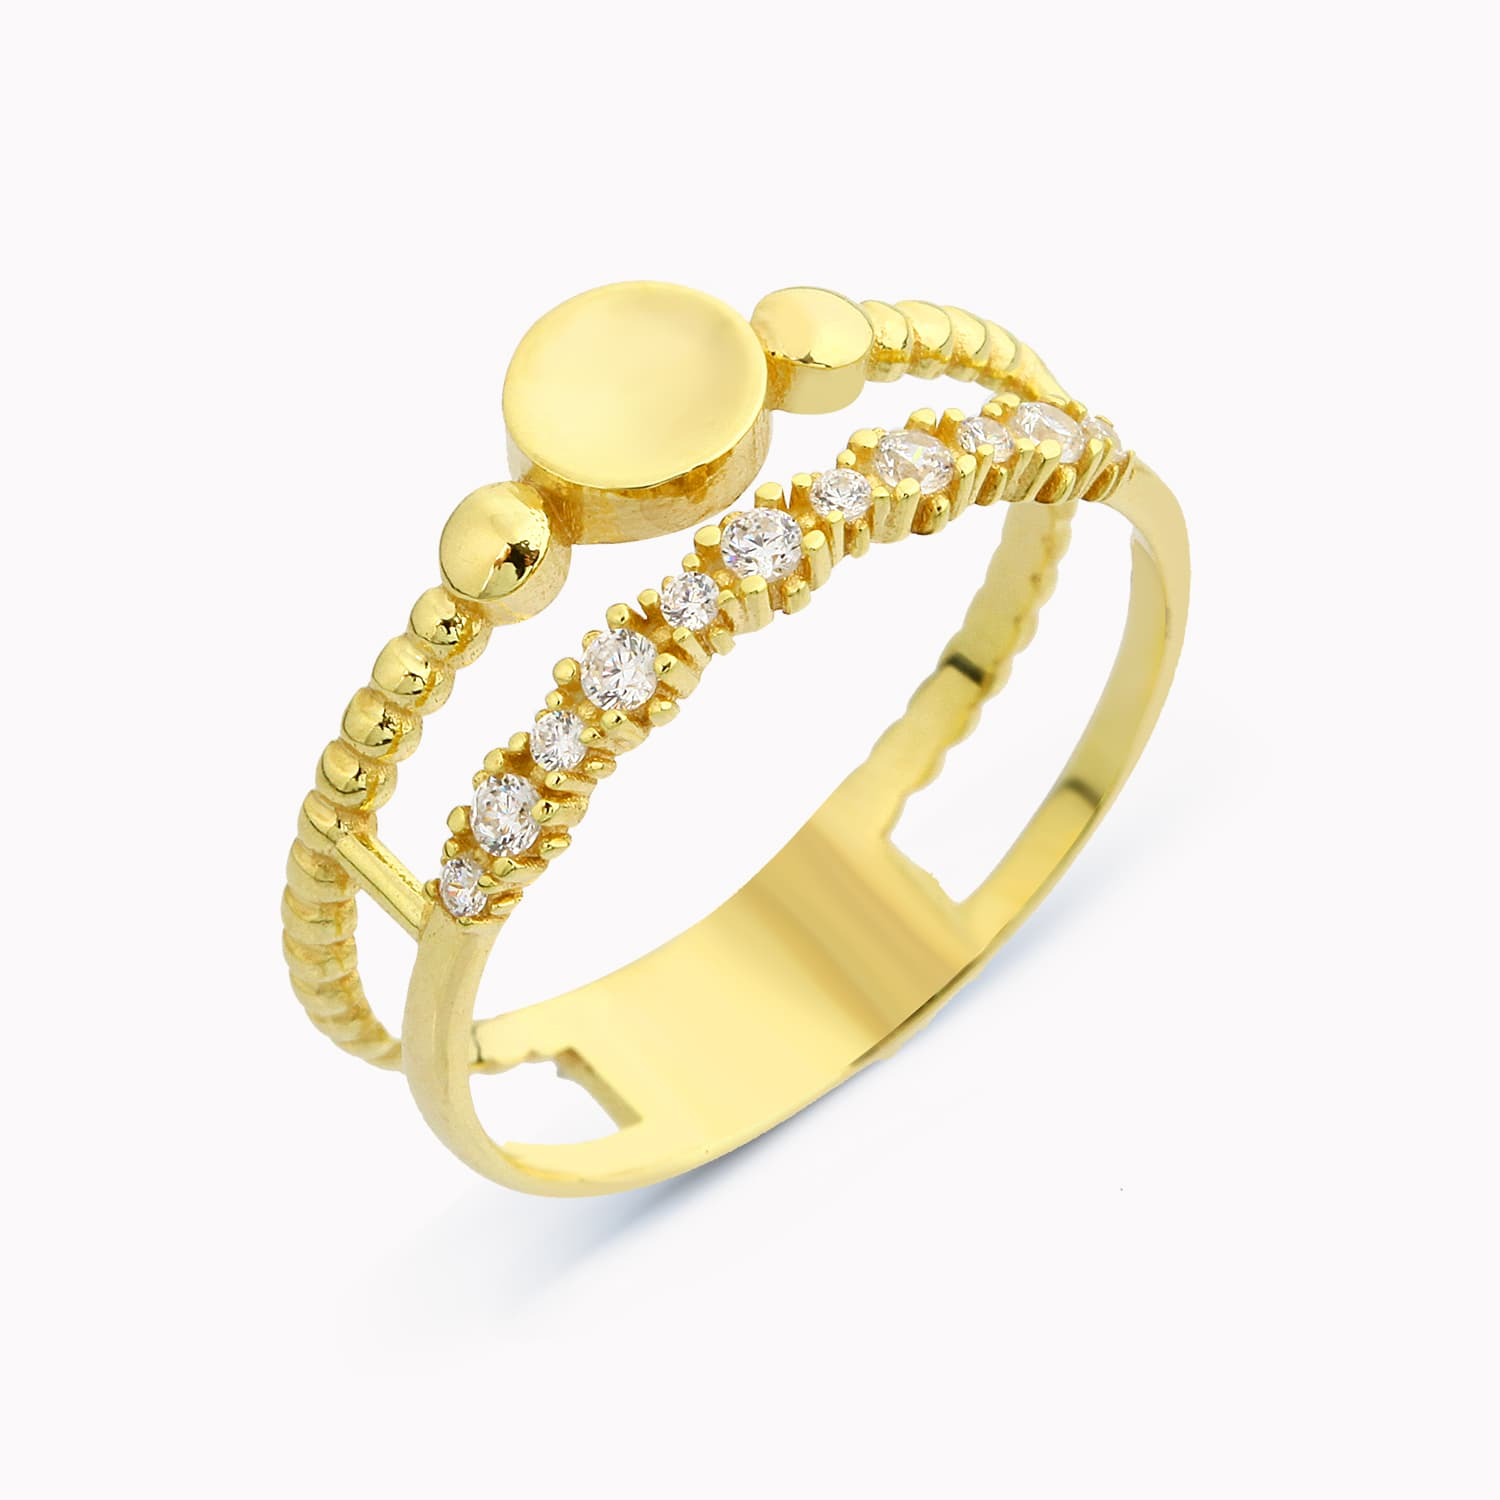 BON DOUBLE BAND RING